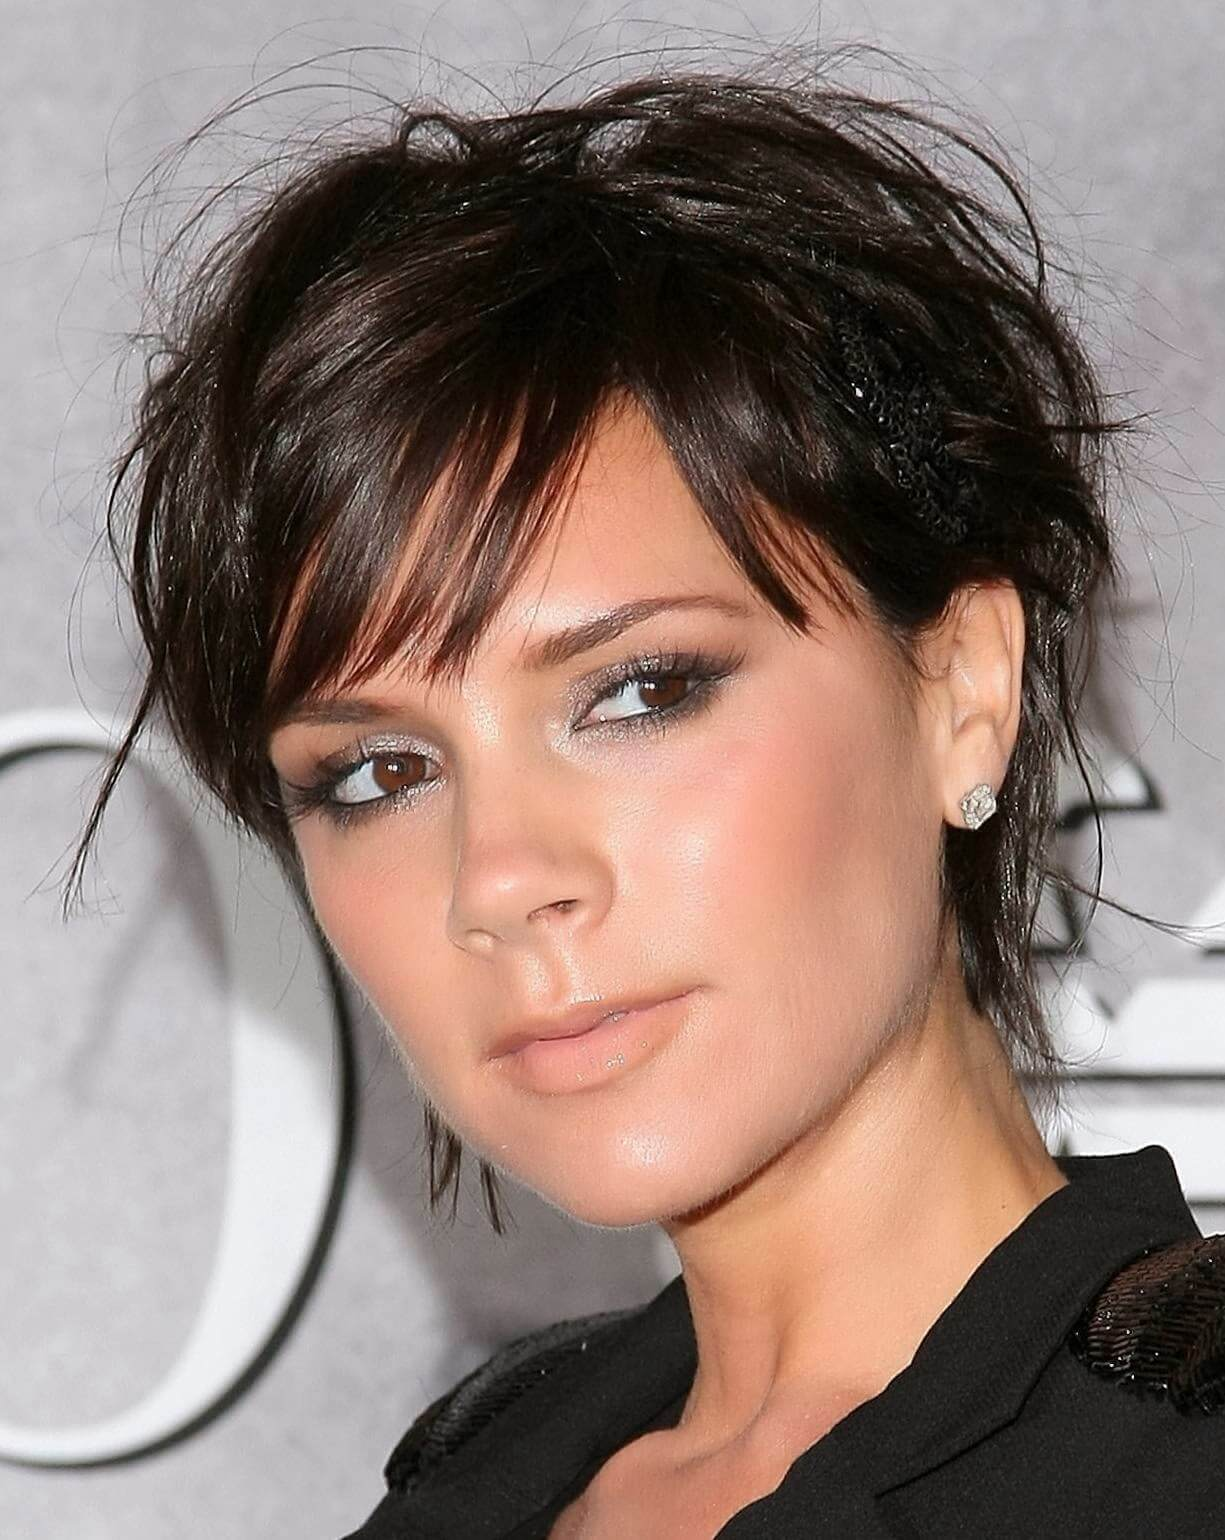 Victoria Beckham's Short Hairstyles and Haircuts - 15+